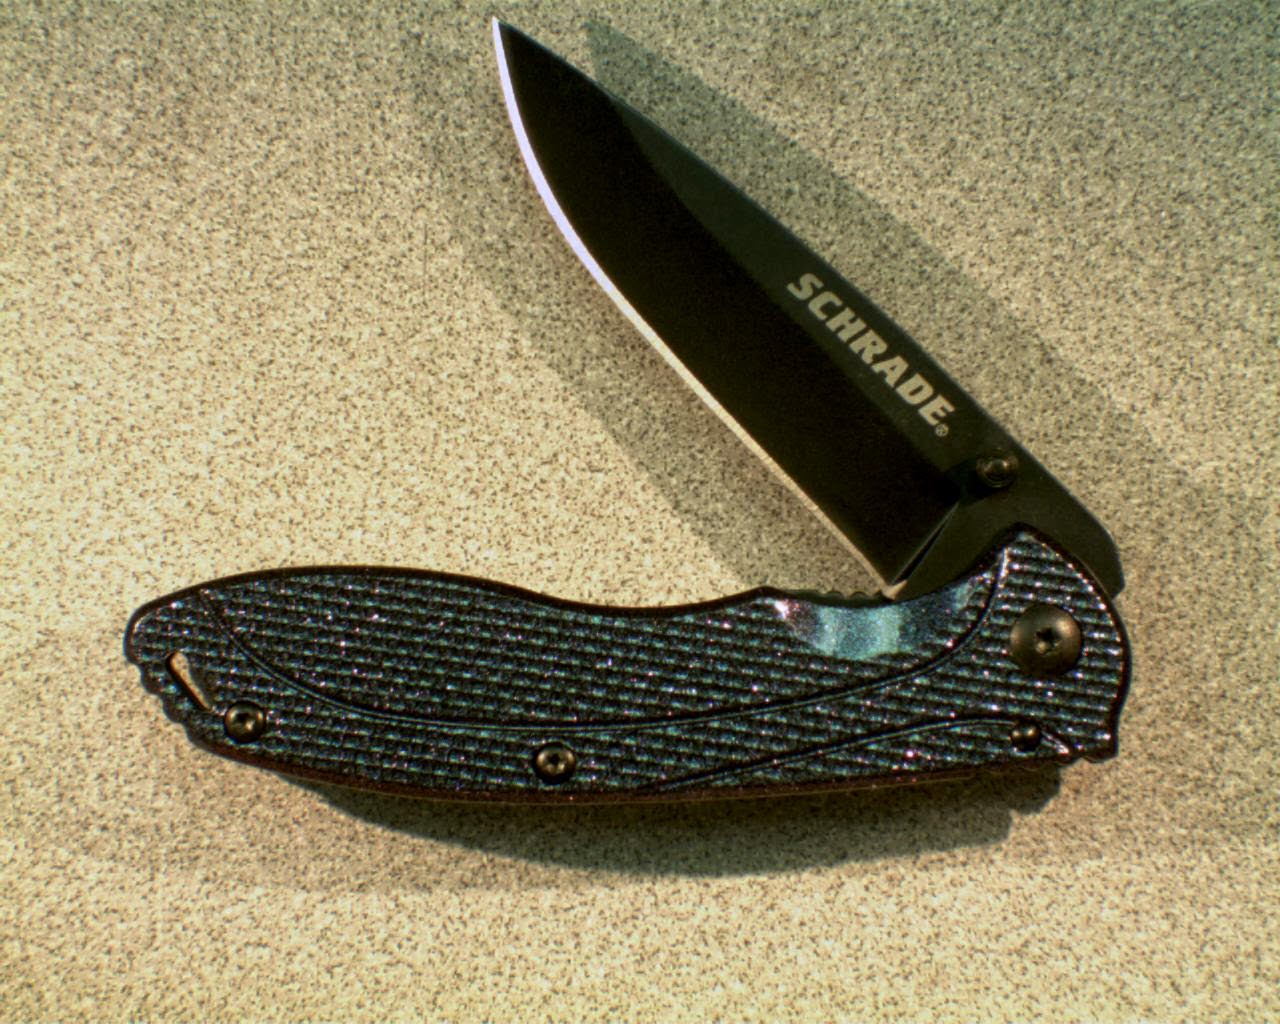 the Schrade color shift knife